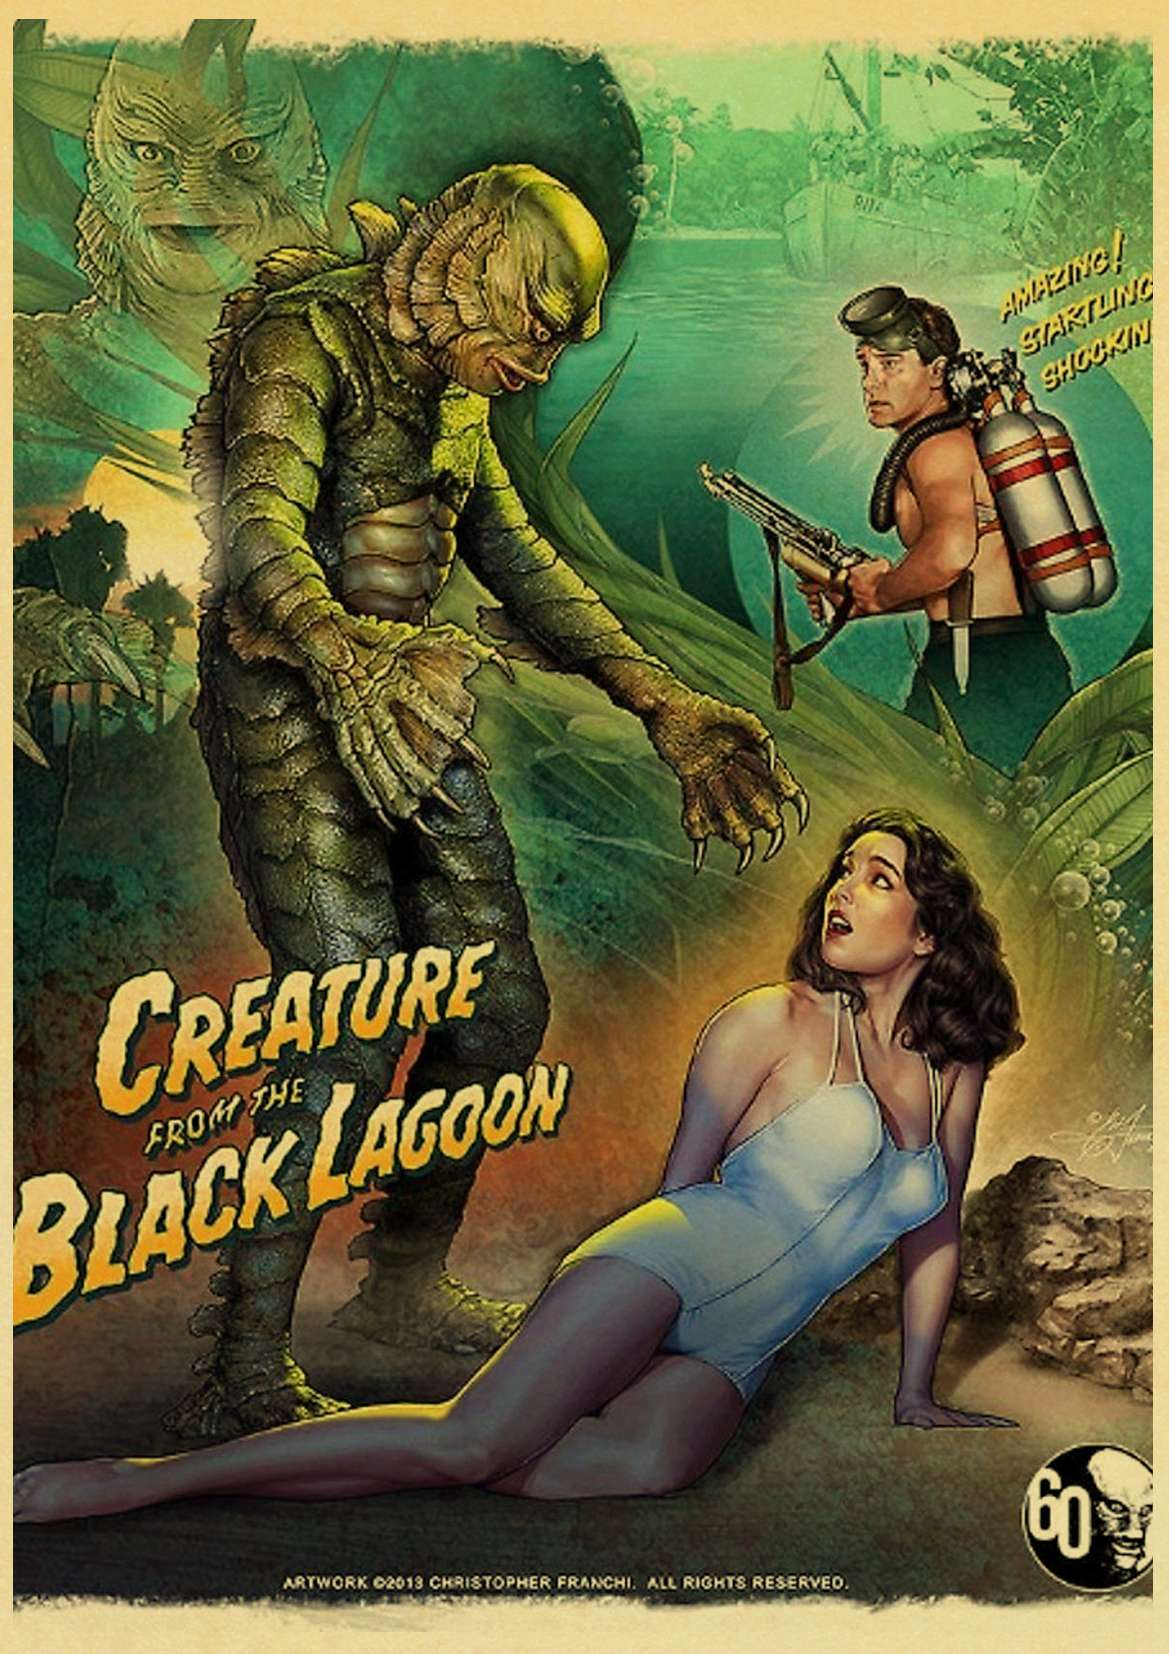 American Horror Movie Creature From The Black Lagoon Retro Posters